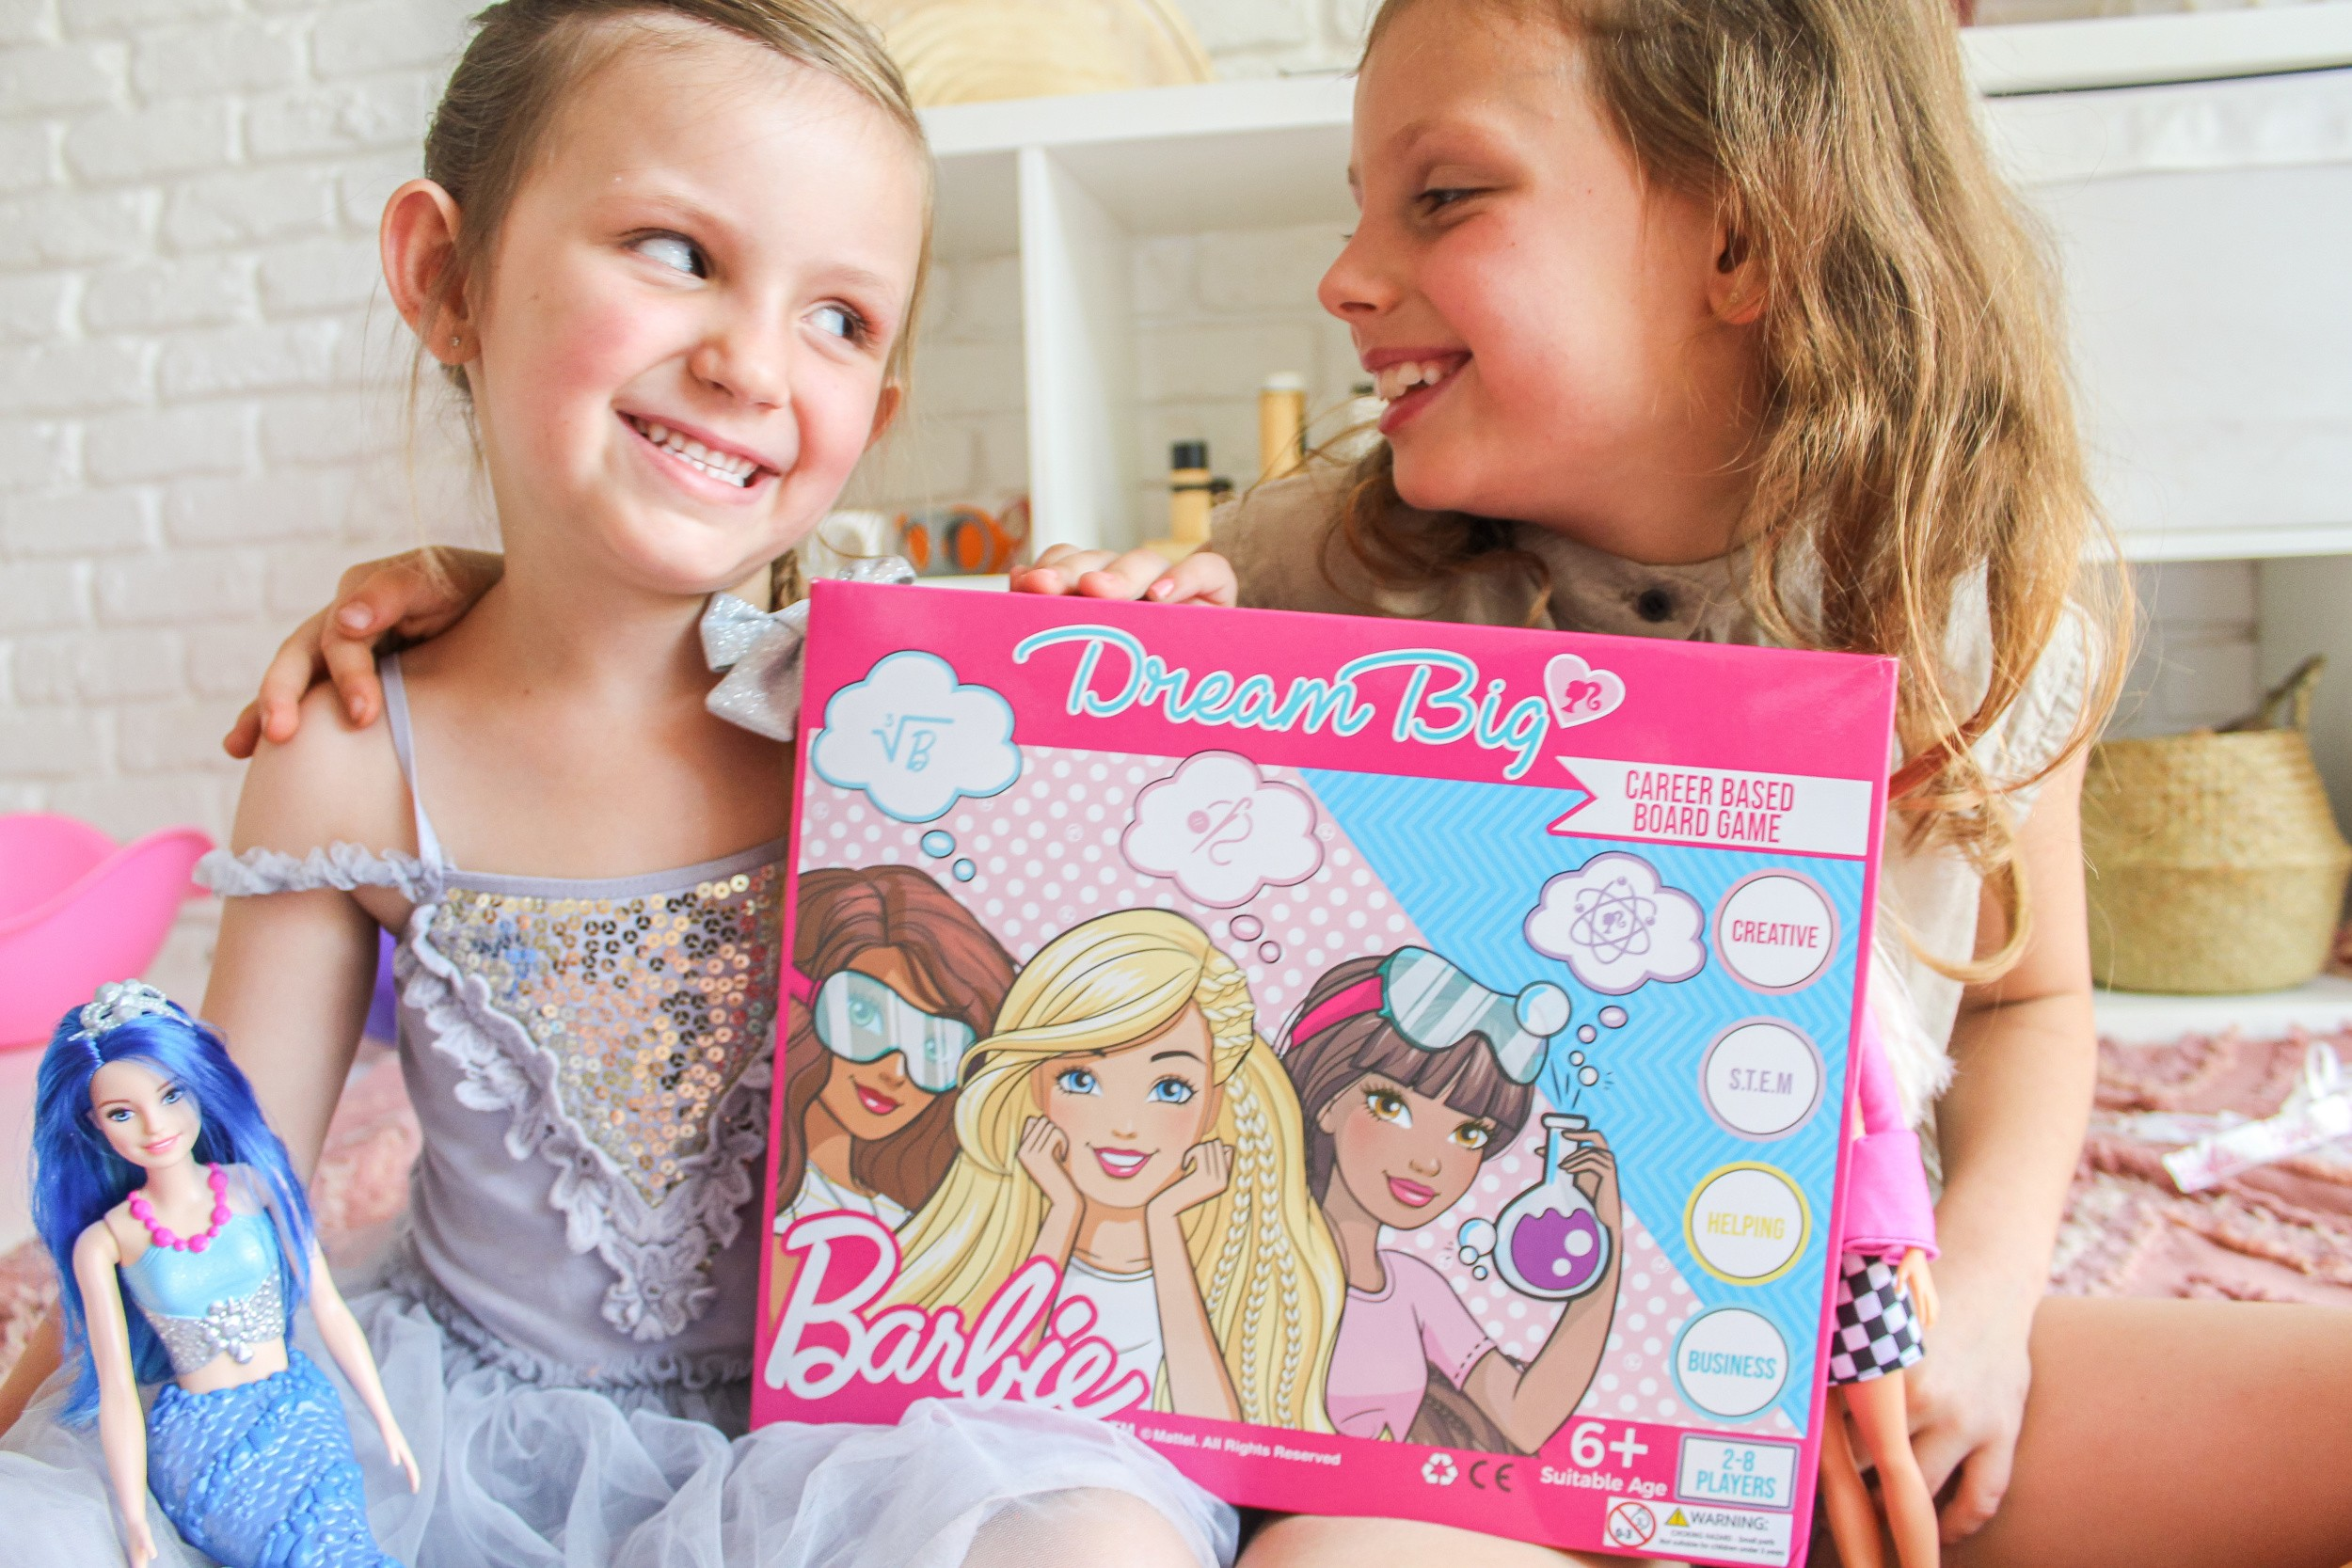 Barbie Dream Big Board Game review